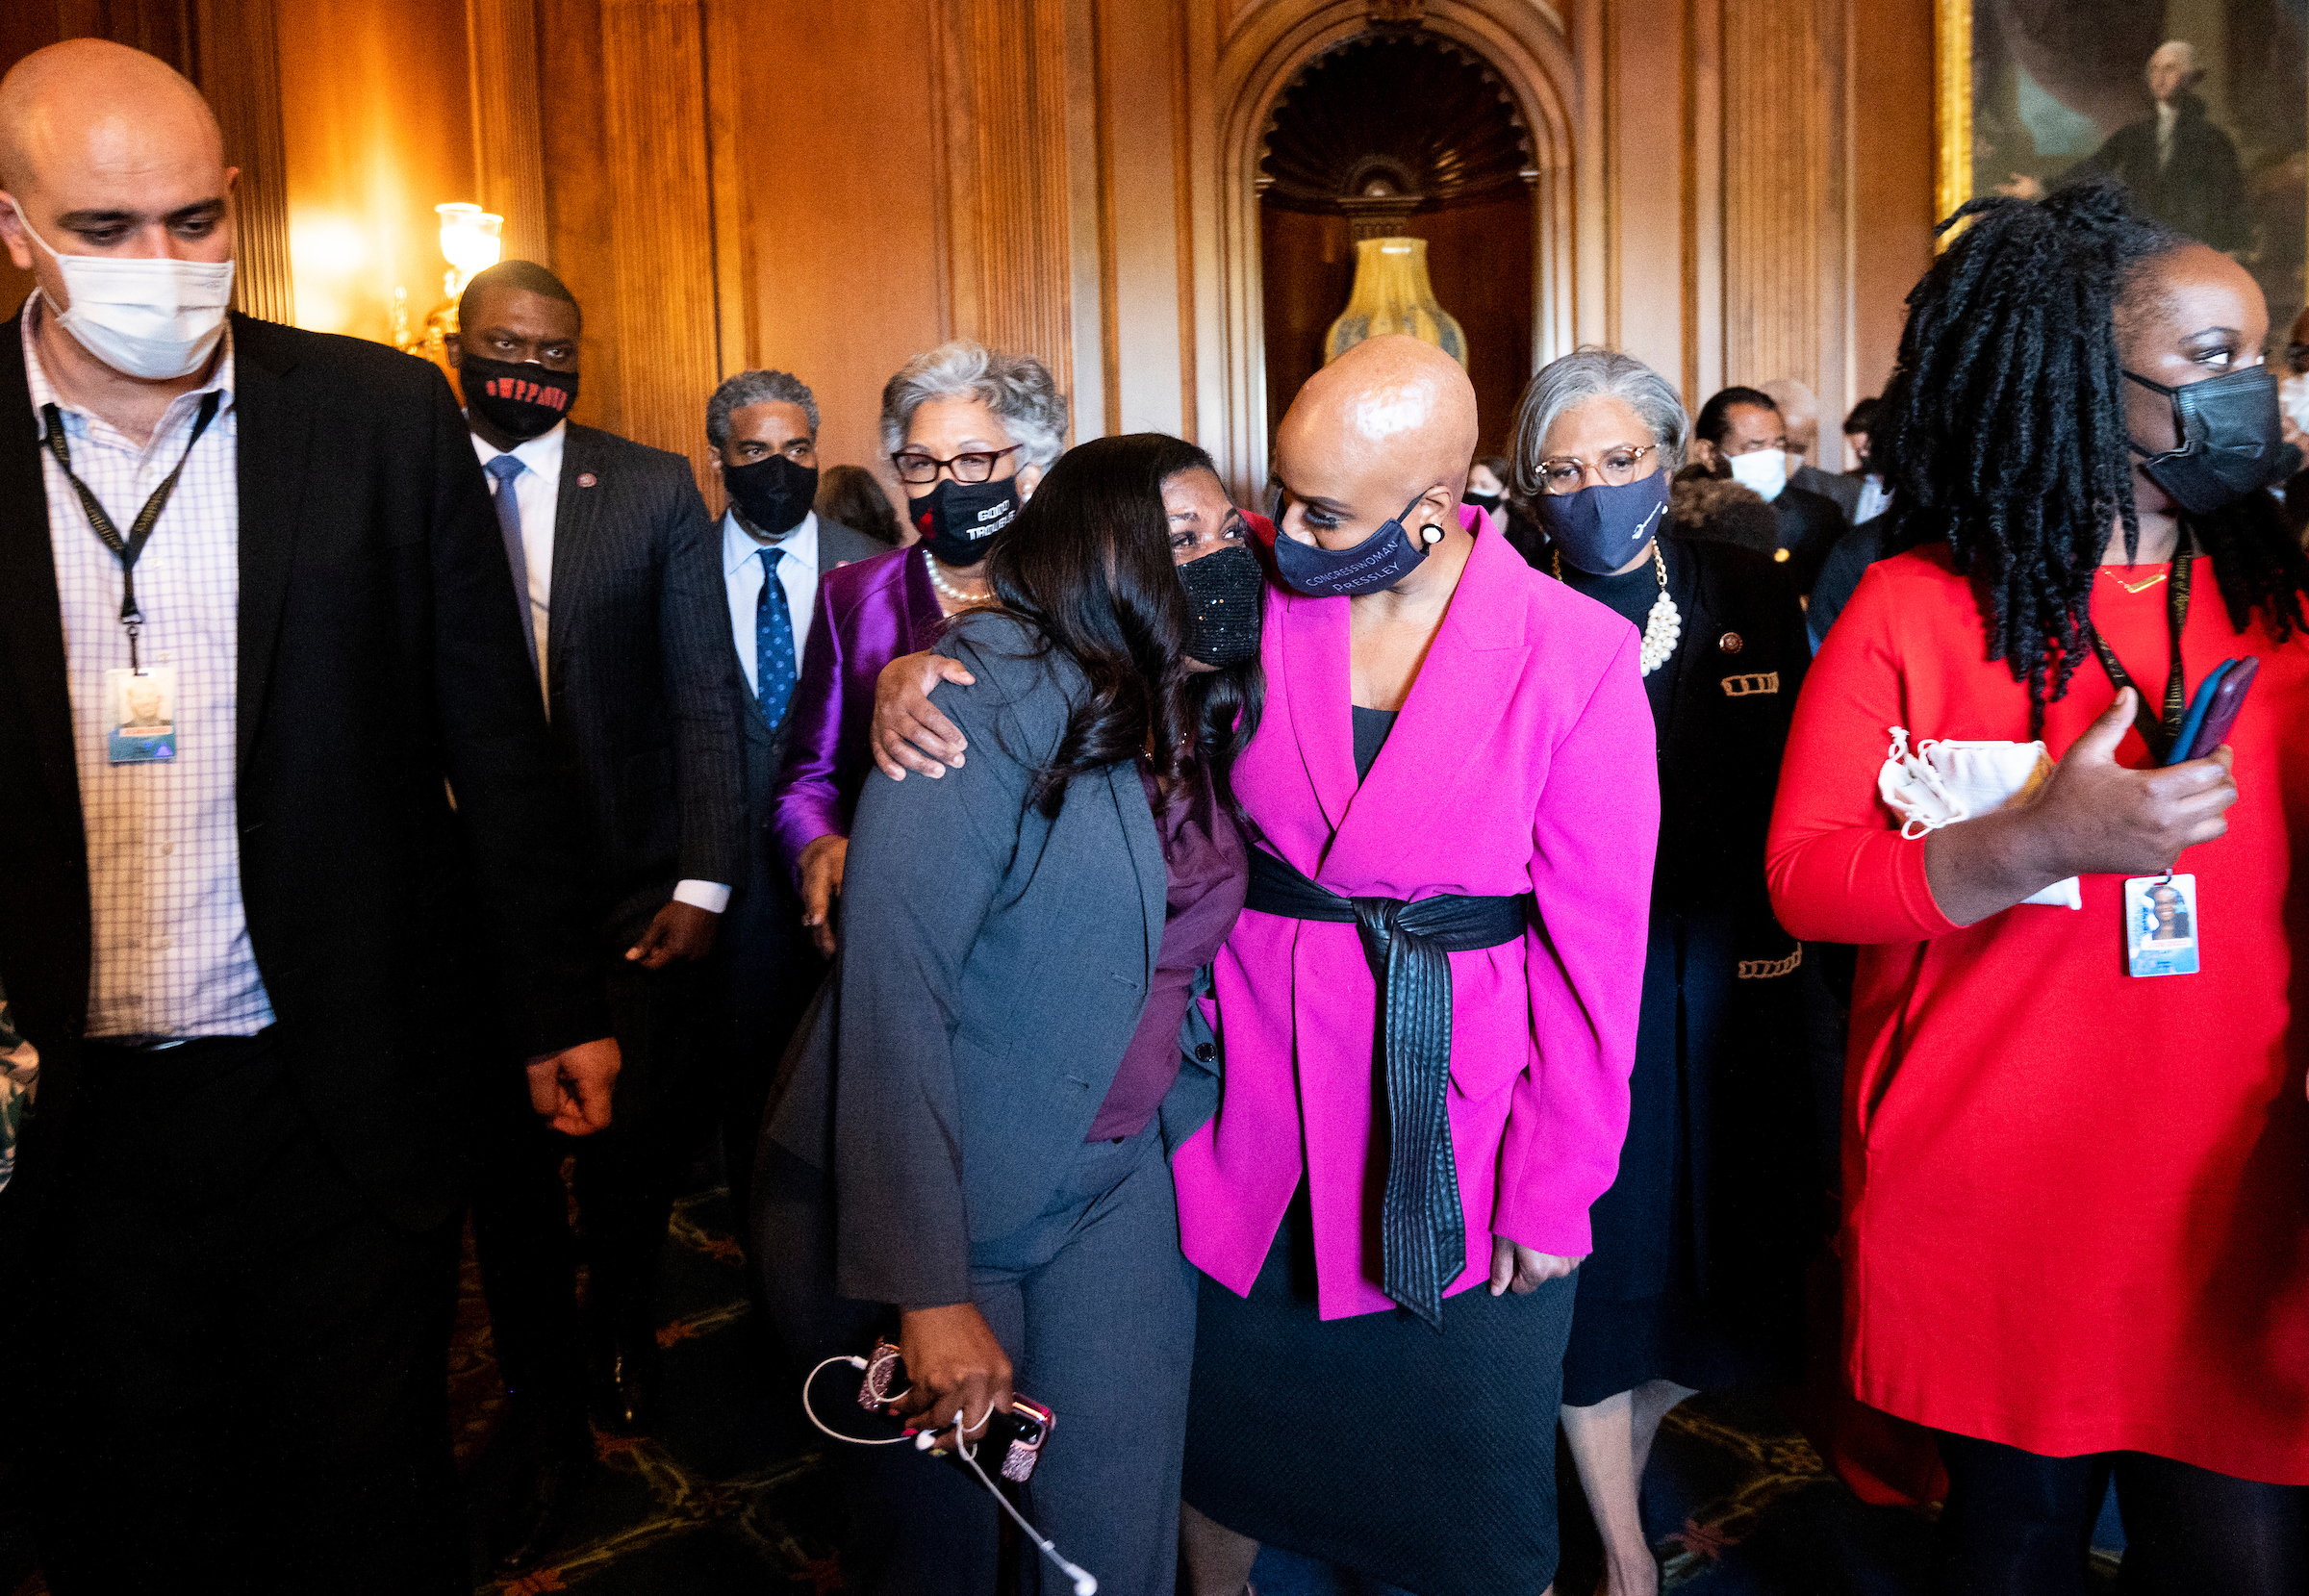 Rep. Cori Bush, D-Mo., left, hugs Rep. Ayanna Pressley, D-Mass., in the Rayburn Room in the U.S. Capitol after hearing three guilty verdicts in the Derek Chauvin trial on Tuesday. (Bill Clark/CQ Roll Call)